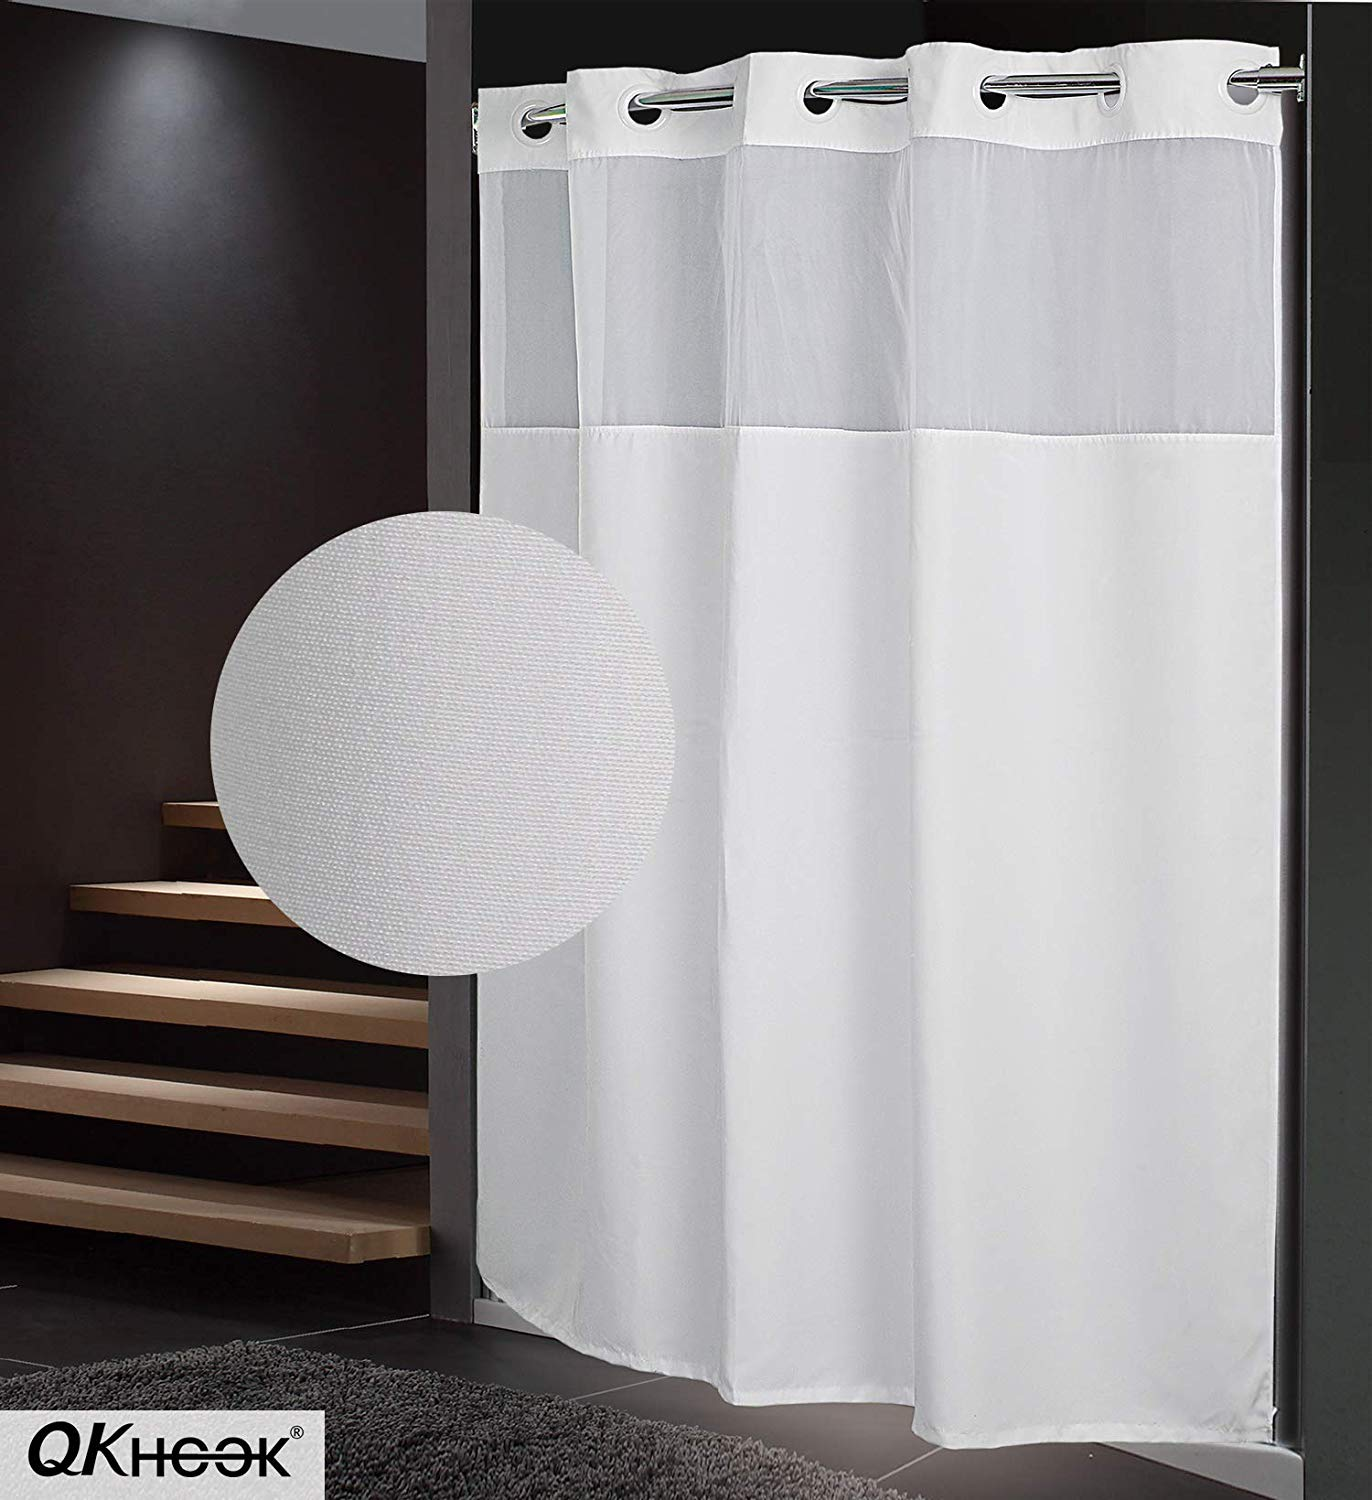 qkhook hookless shower curtain with snap in liner 1 packs 71x74 inches mildew resistant fabric plain water repellent and antibacterial walmart com